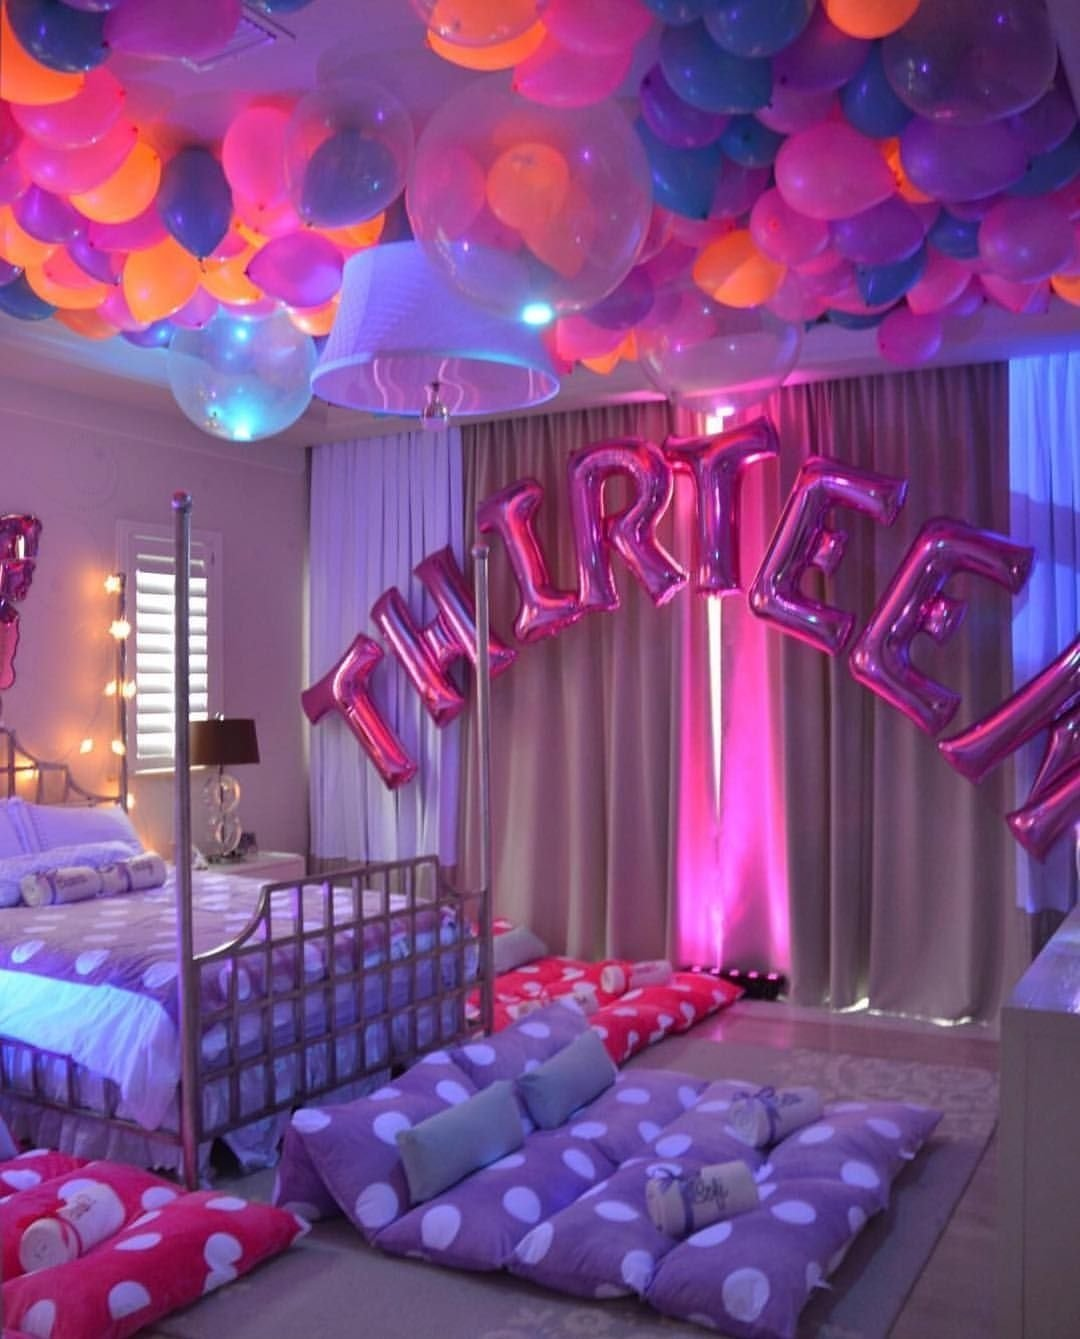 10 Fabulous Birthday Ideas For A 13 Year Old Girl the cutest birthday look for a 13 year old girlcenter stage 10 2020